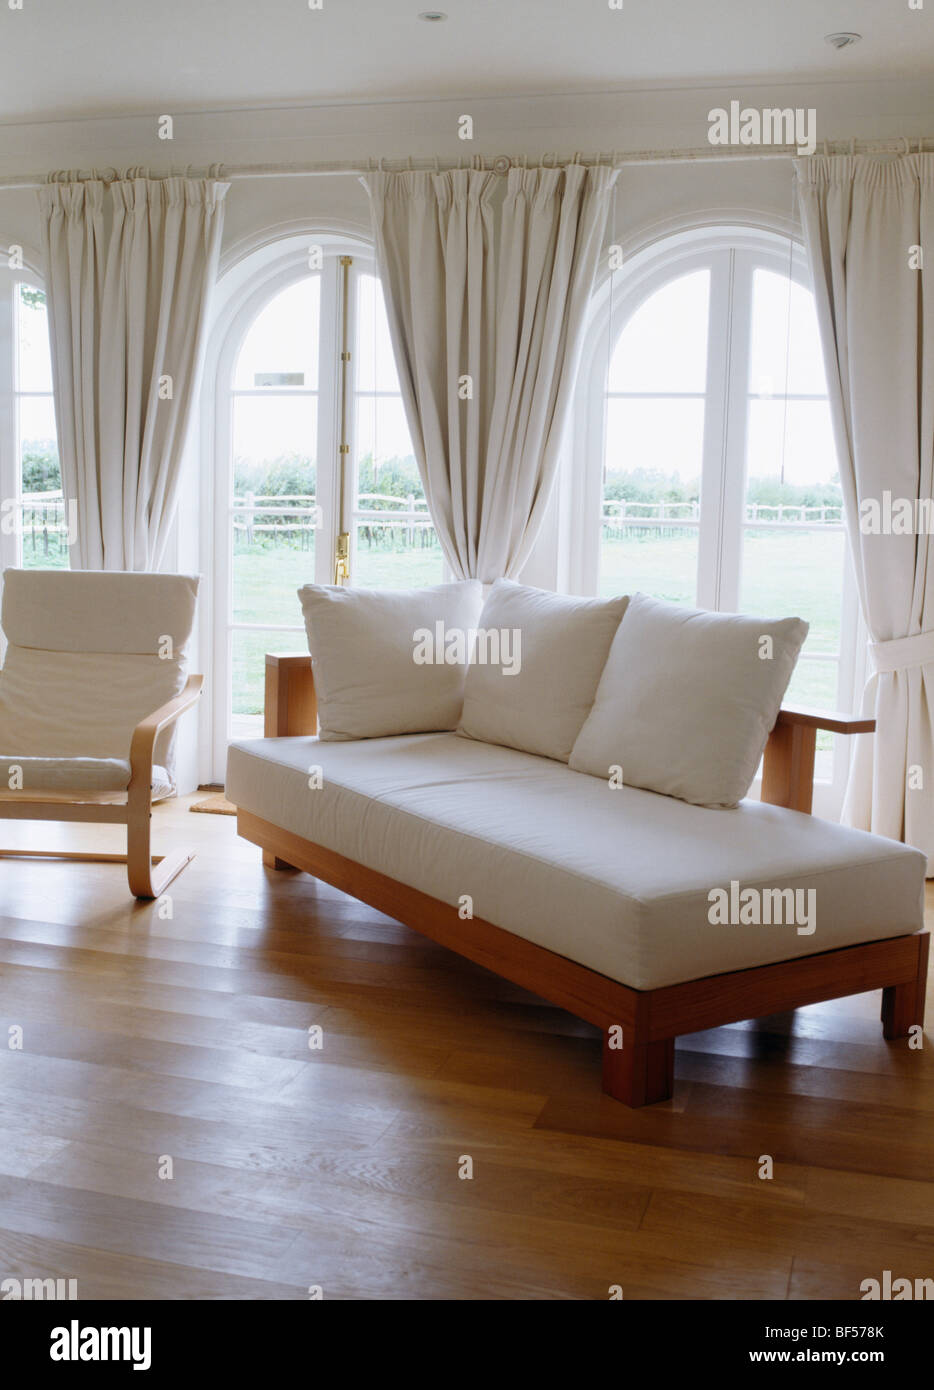 Day Bed With White Cushions In Living Room With Wooden Floor And White  Curtains At French Windows